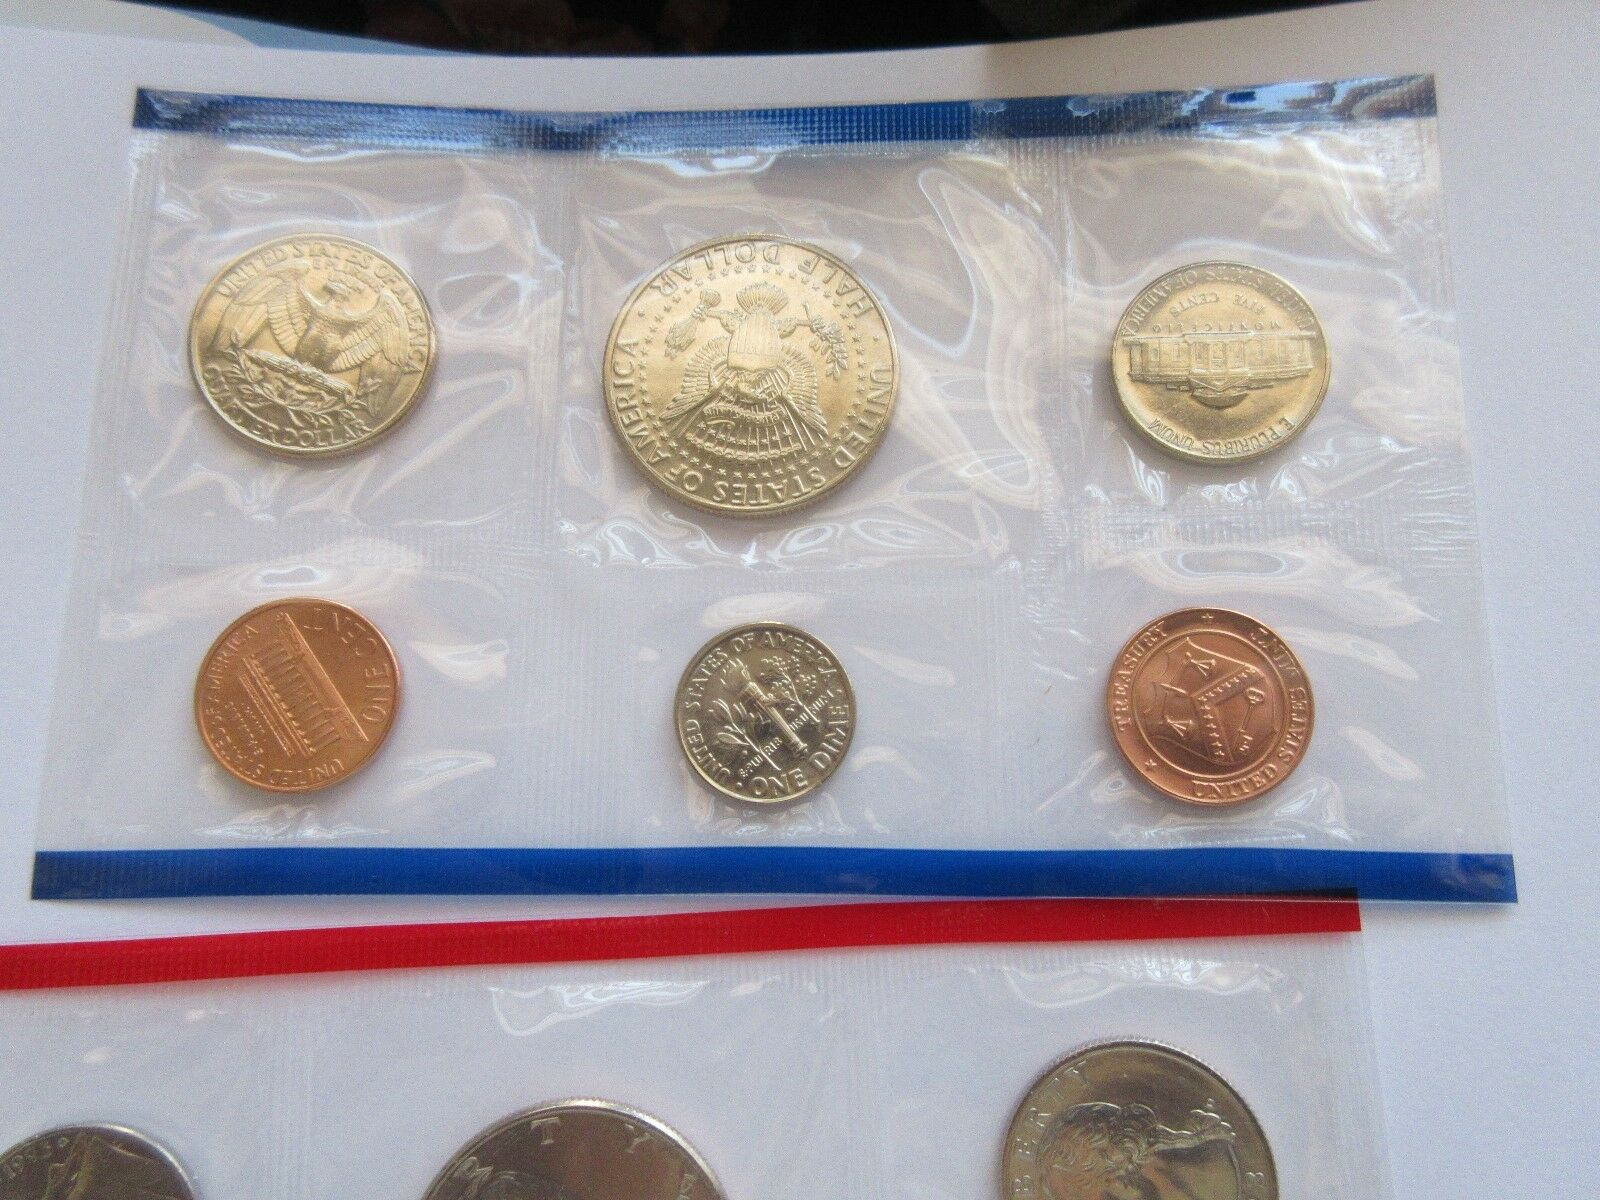 1993 United States Mint Uncirculated Coin Set With P an